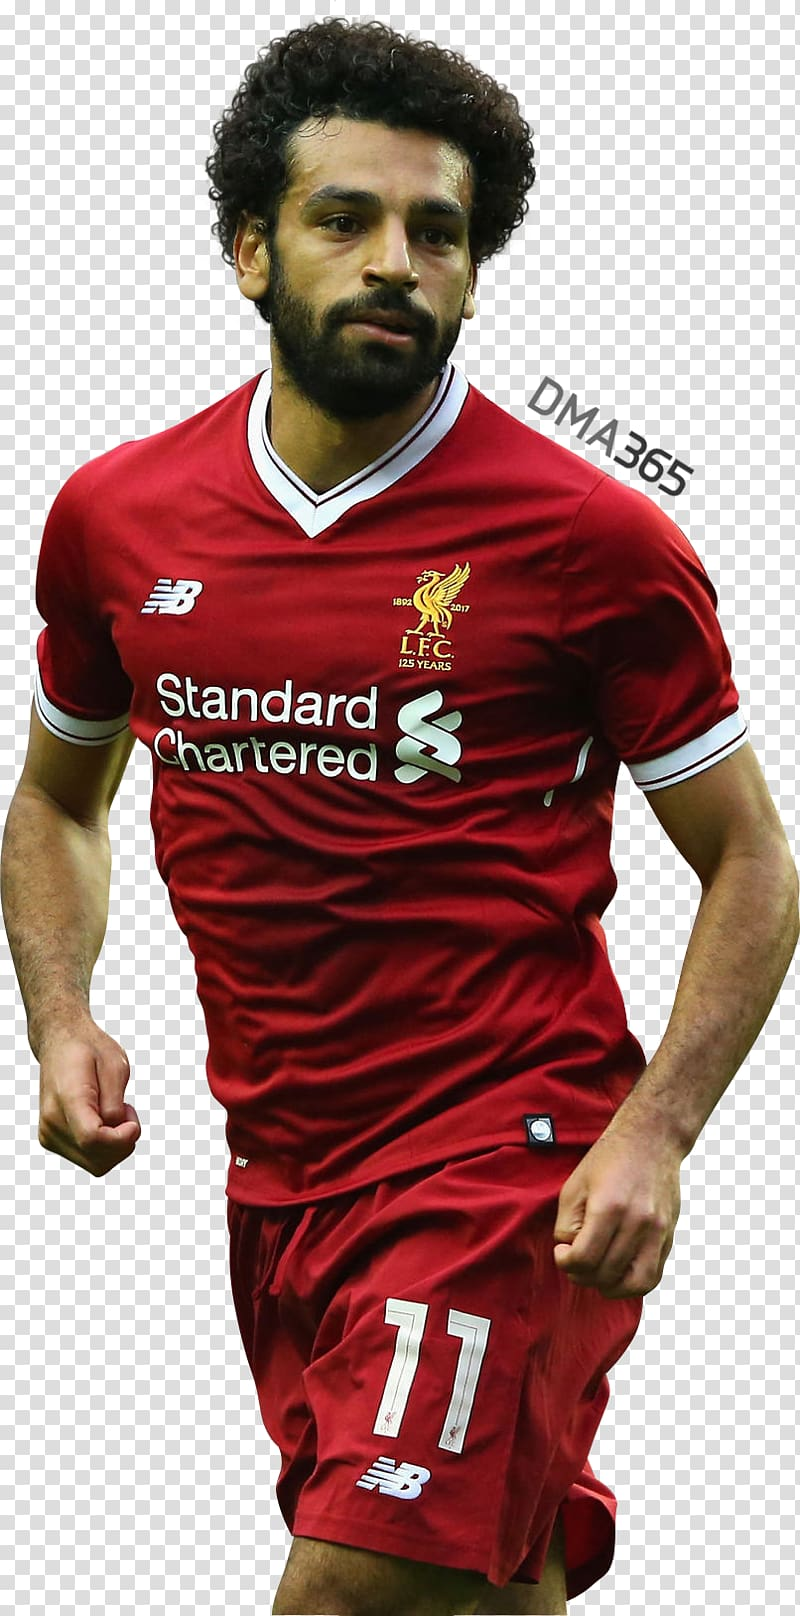 Mo salah clipart svg library stock Man wearing red-and-white soccer uniform, Mohamed Salah ... svg library stock